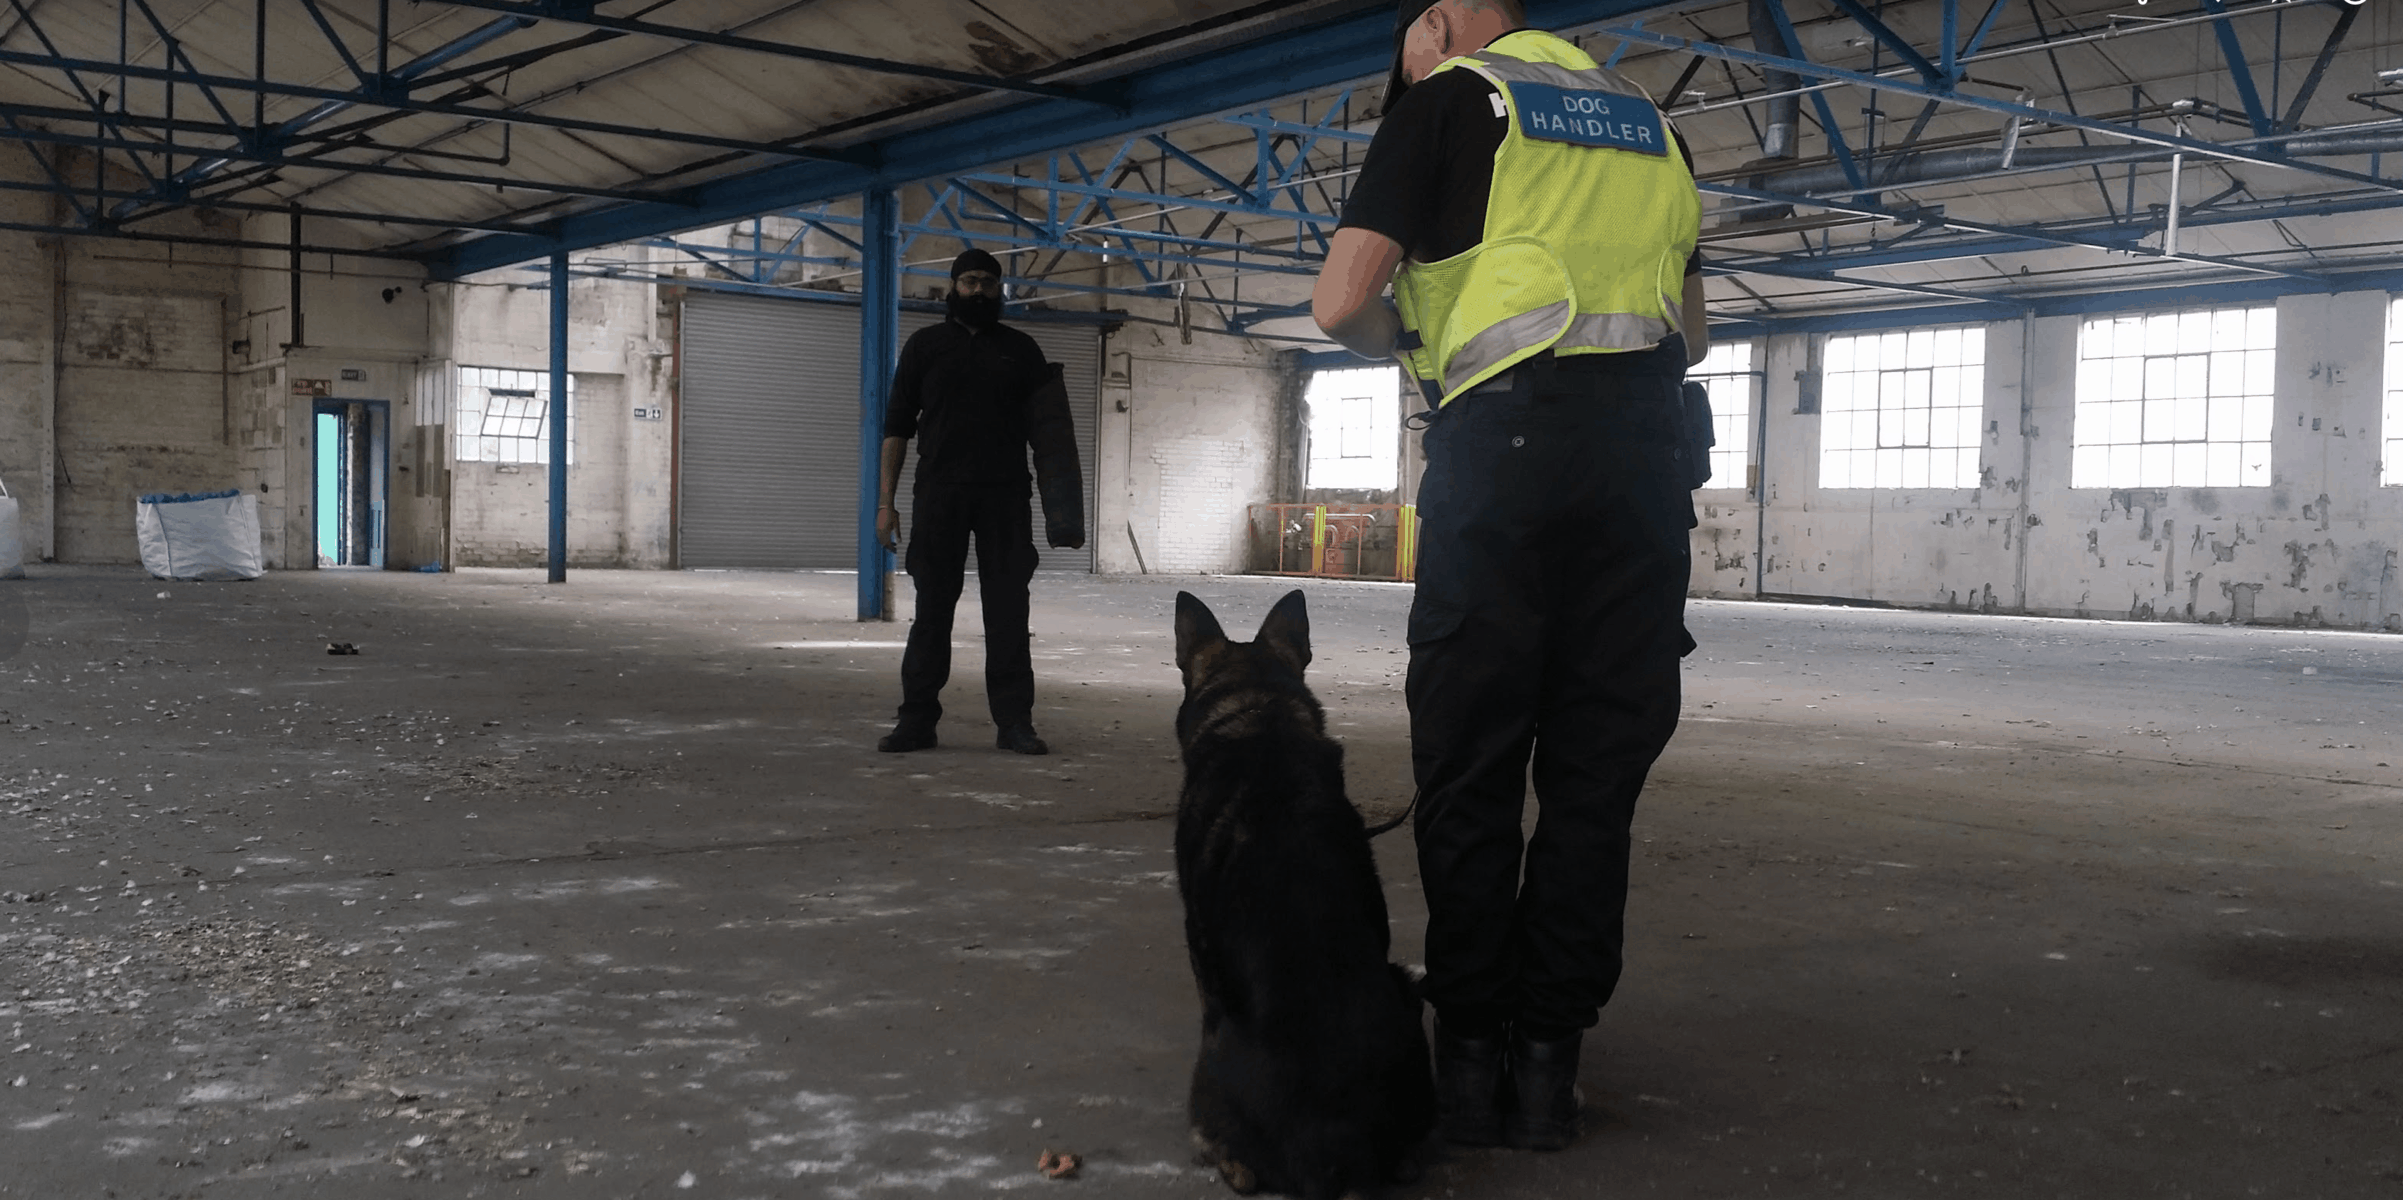 Security dogs manchester